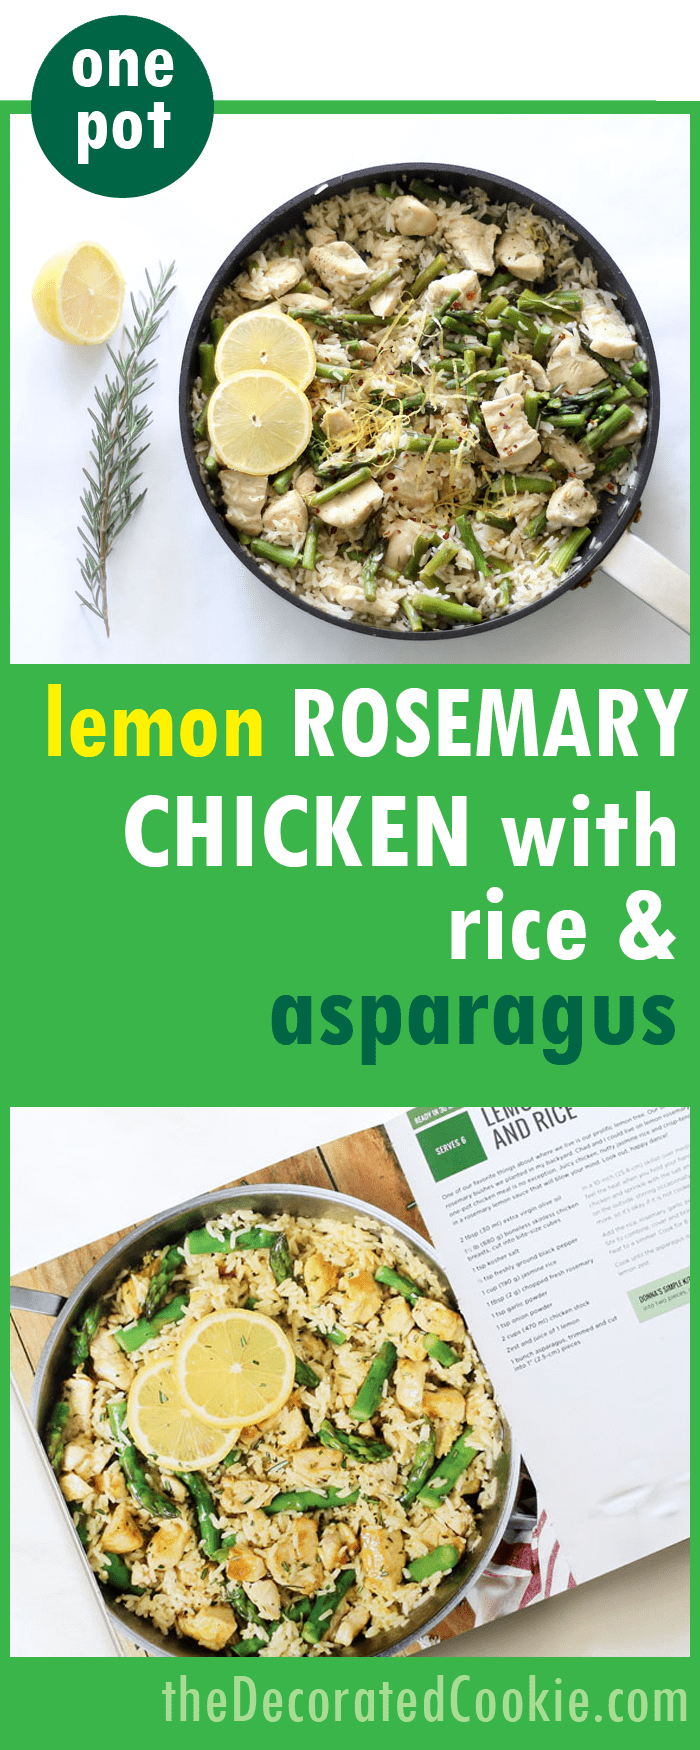 weeknight dinner idea one pot dinner idea: lemon rosemary chicken with rice and asparagus